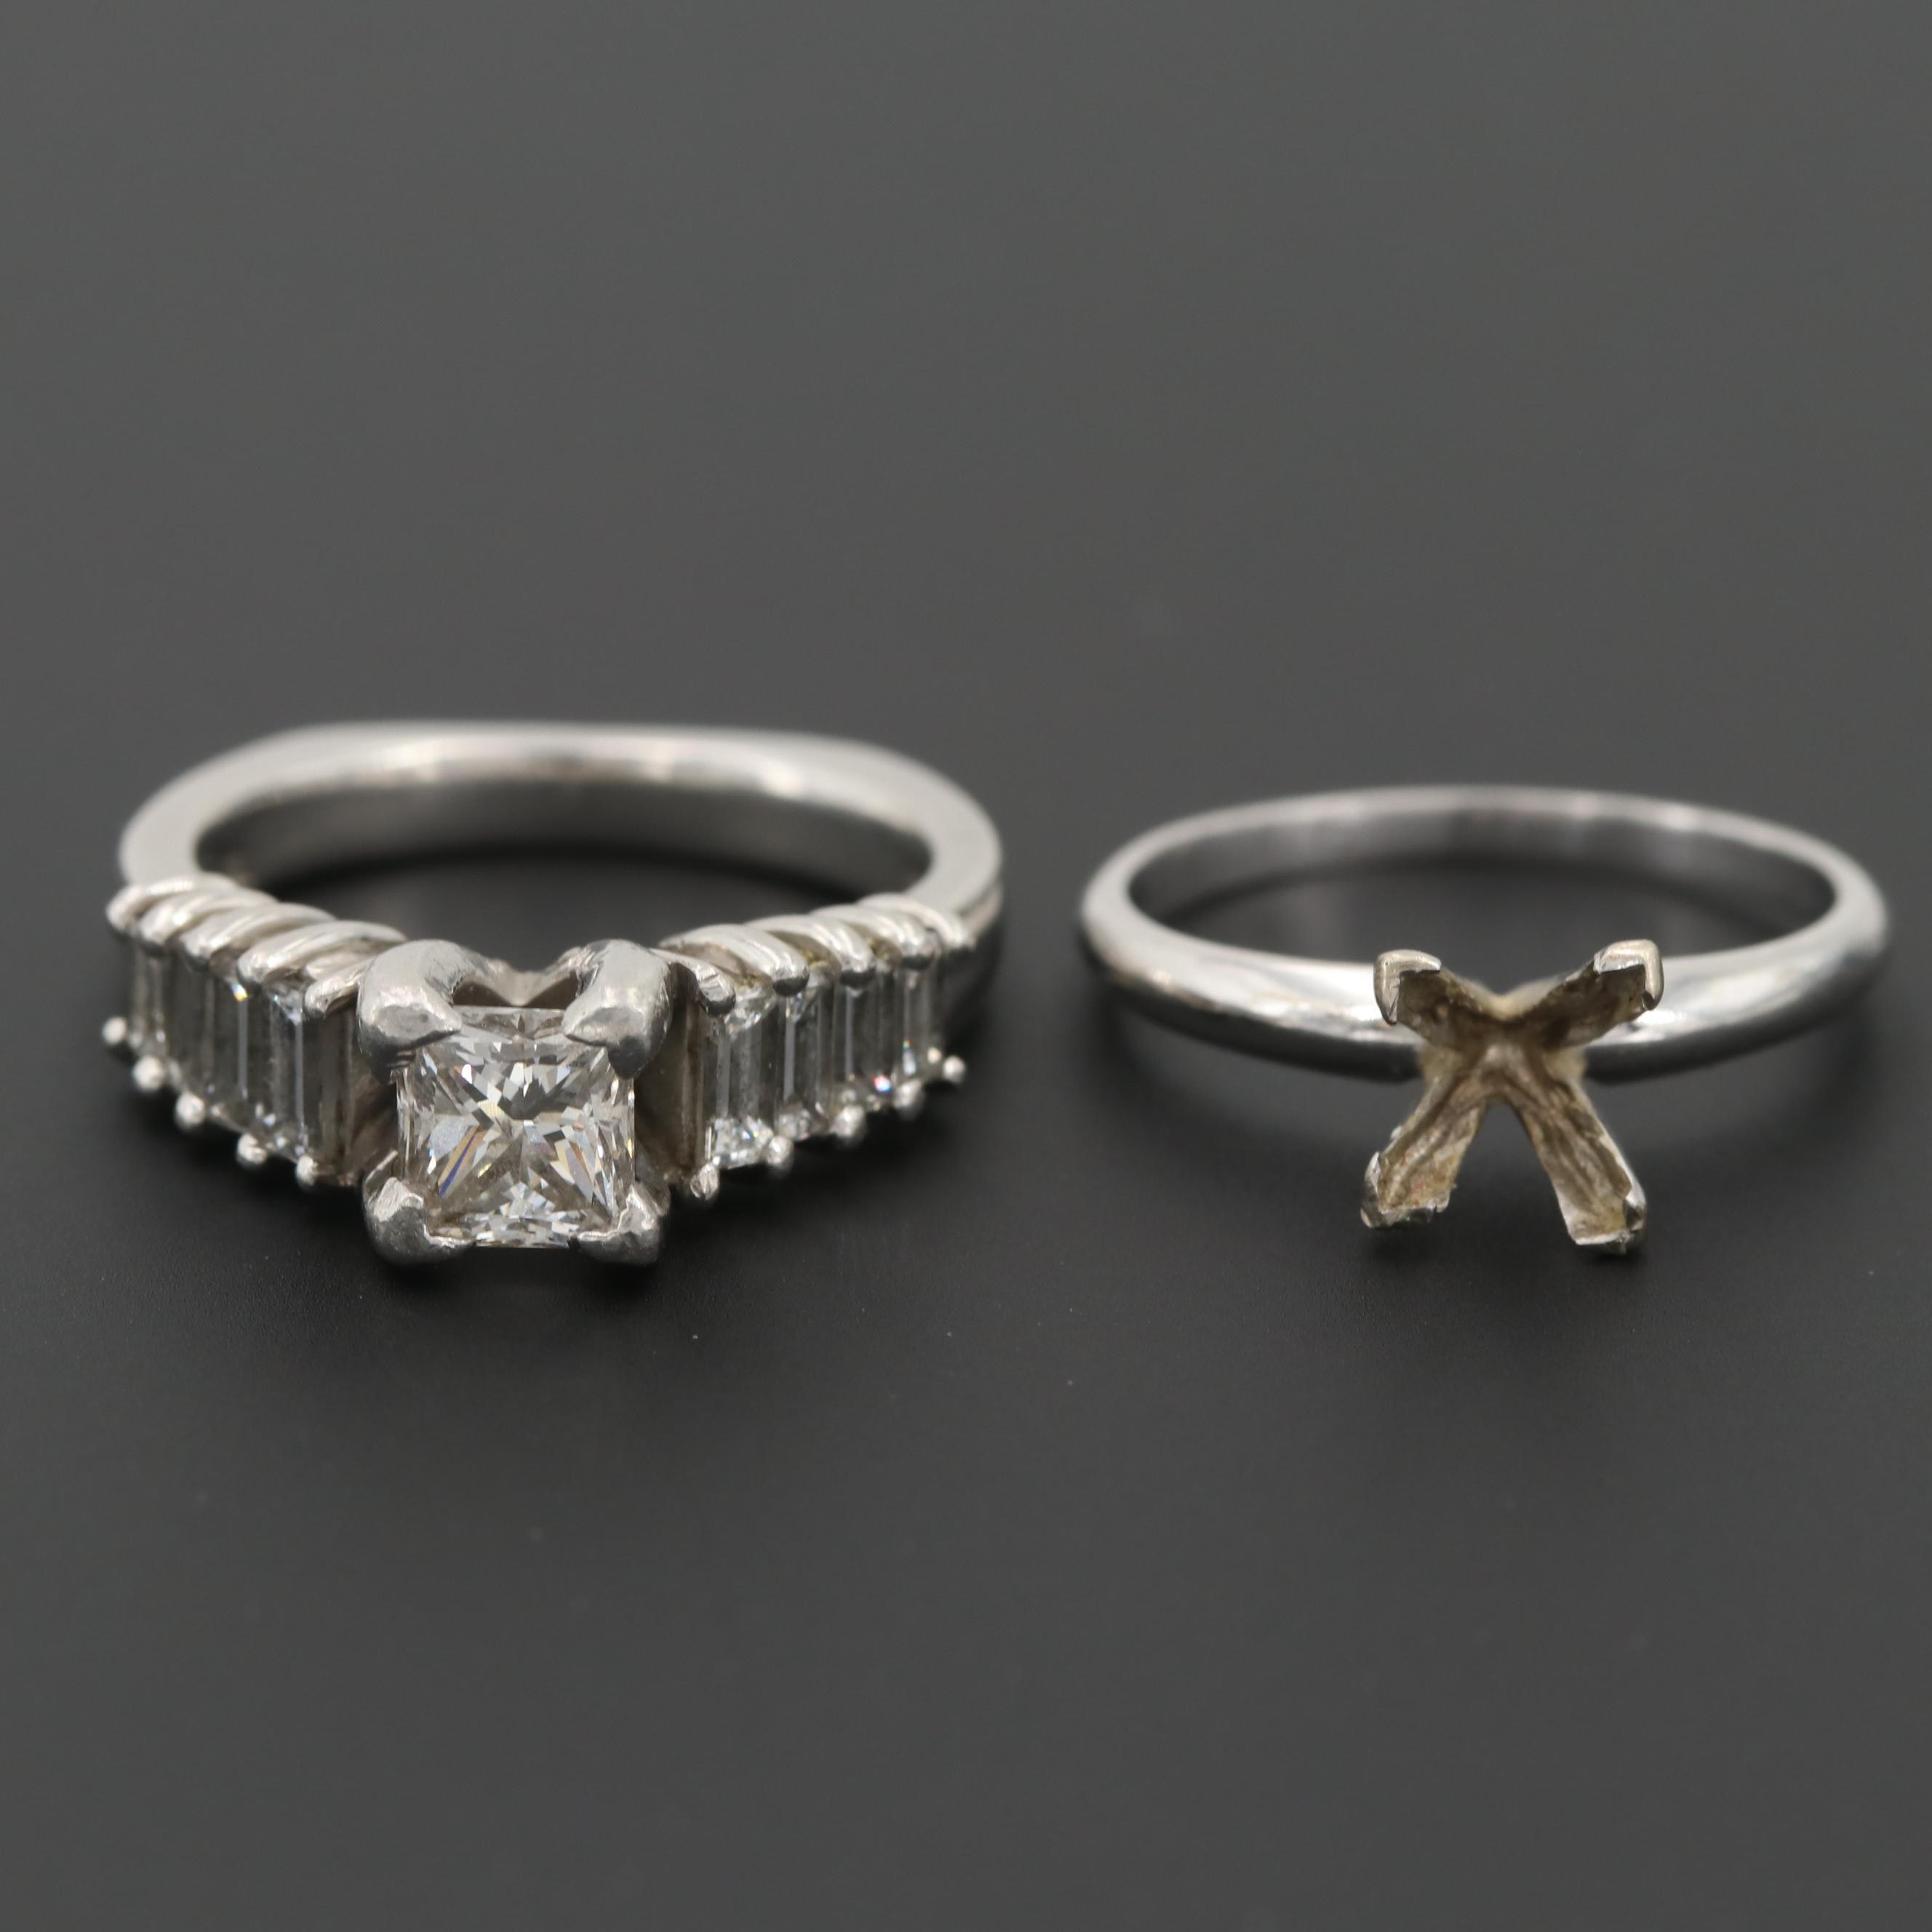 Platinum 1.92 CTW Diamond Ring and a 14K White Gold Mounting